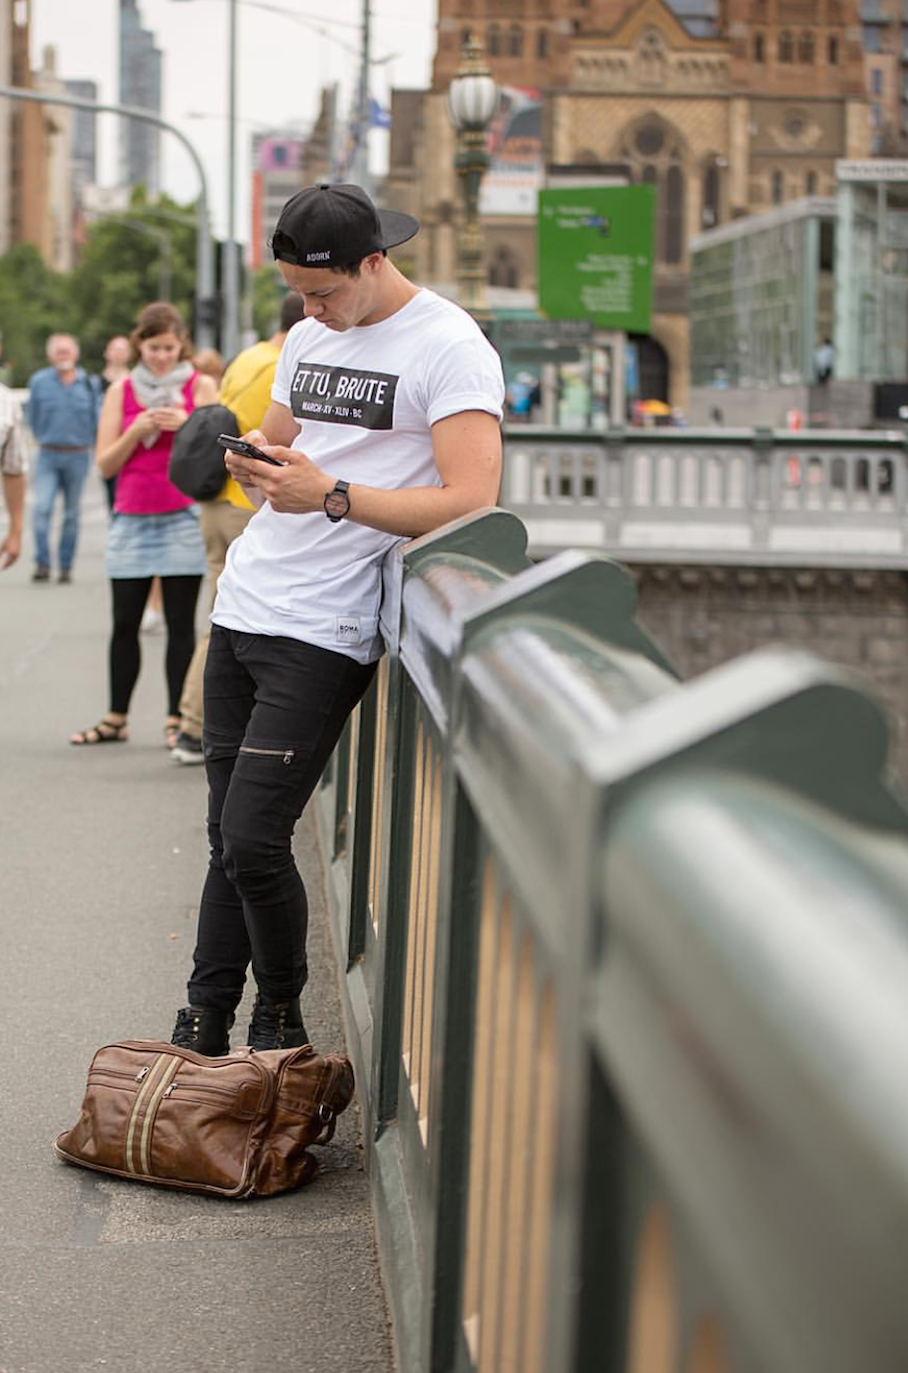 Vic: Rory McKenna, Swanston St, Melbourne, snapped by Ryan Murch.